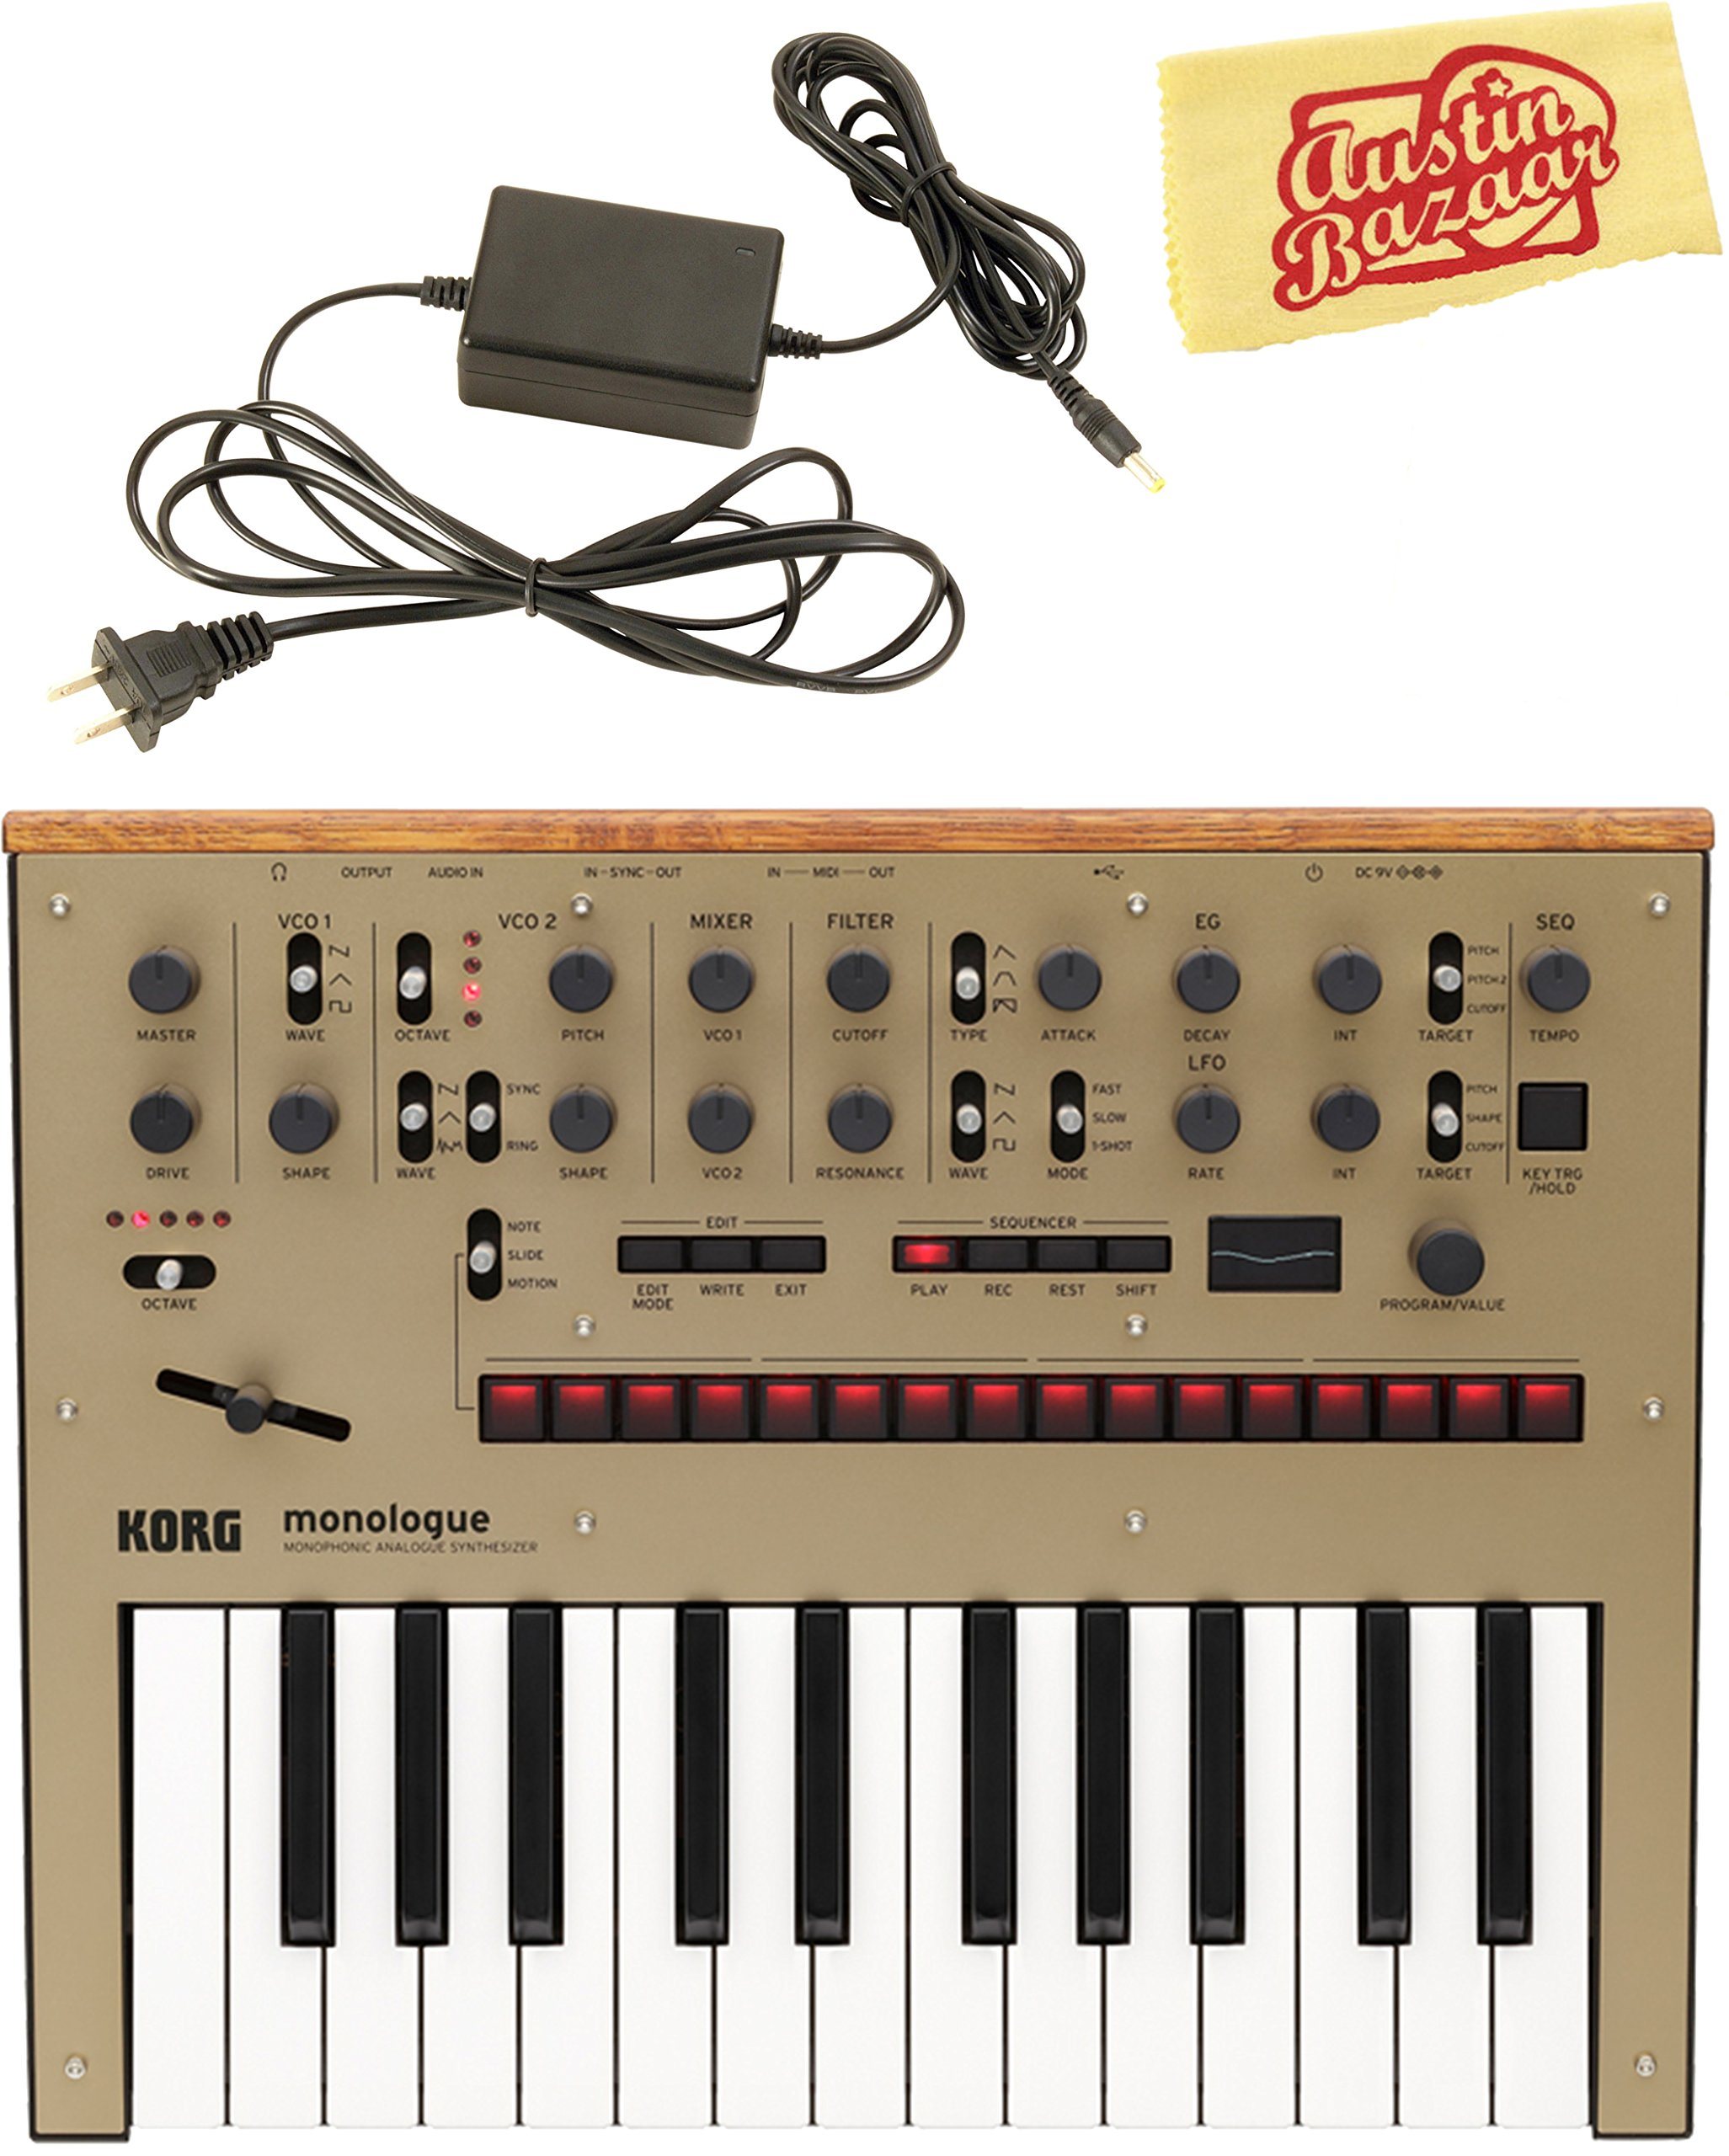 Korg Monologue Monophonic Analog Synthesizer - Gold Bundle with Power Supply and Austin Bazaar Polishing Cloth